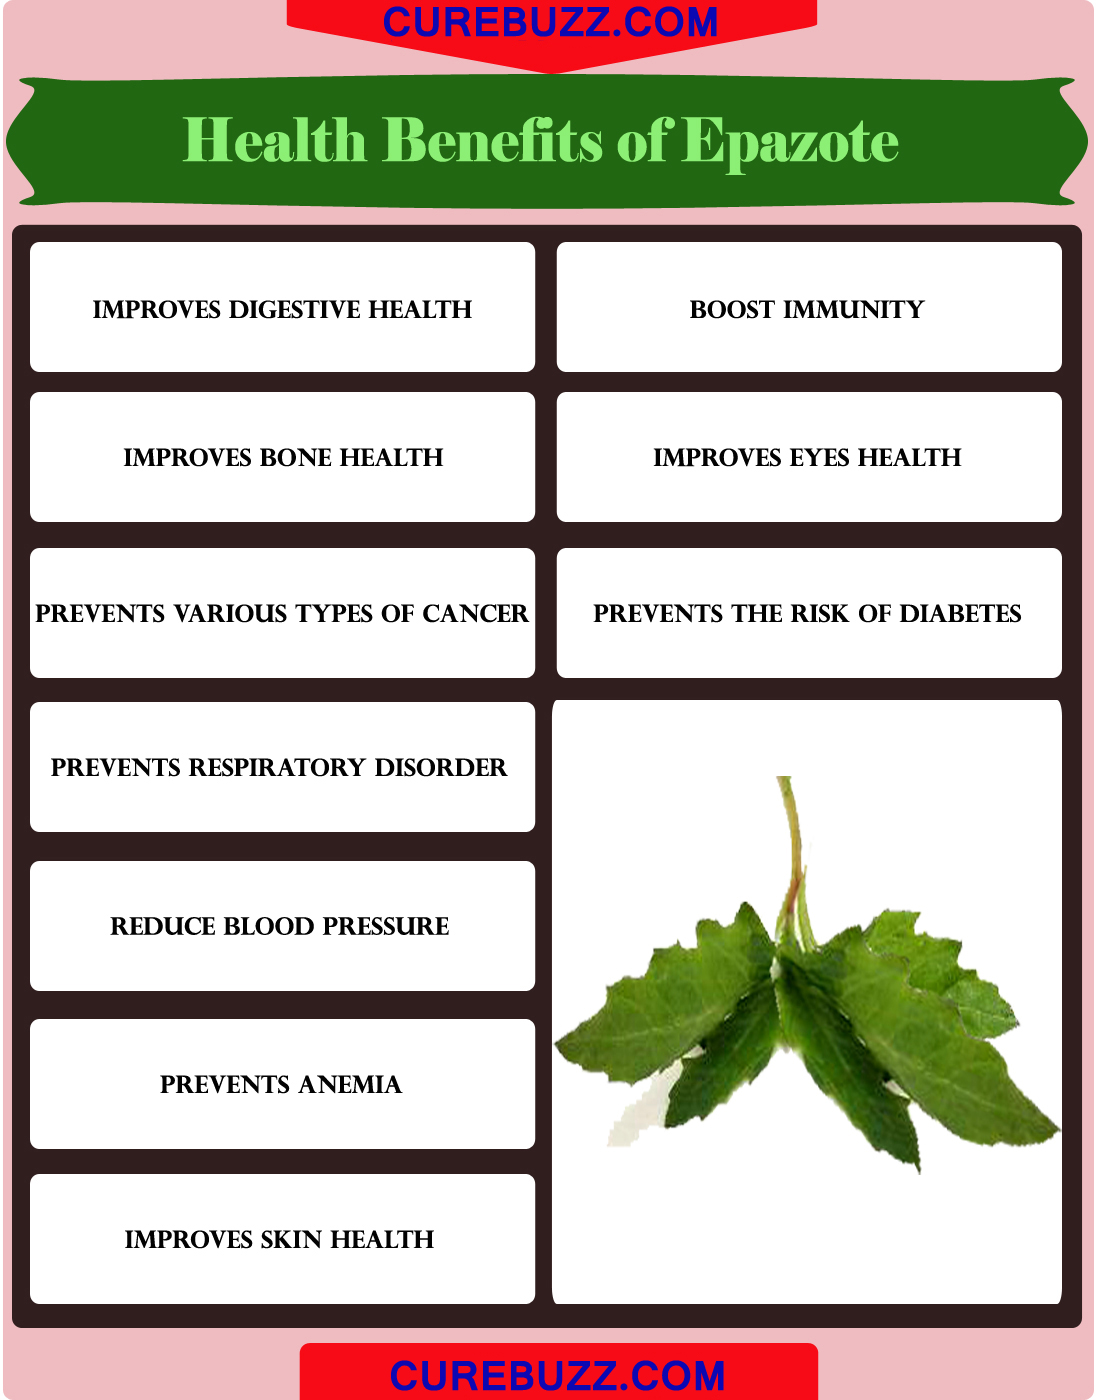 Health Benefits of Epazote